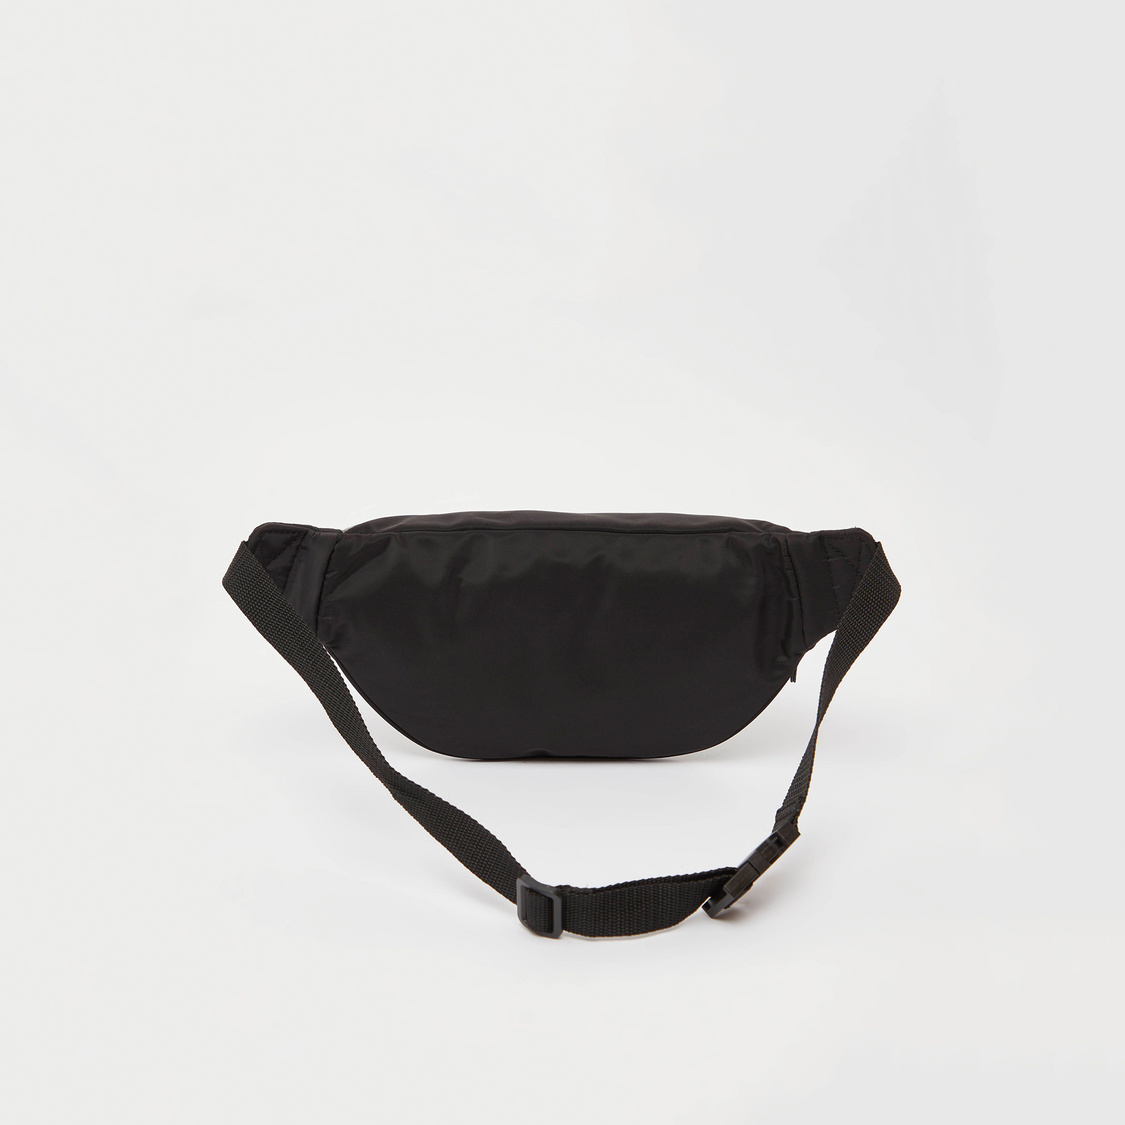 Solid Waist Bag with Applique and Adjustable Strap